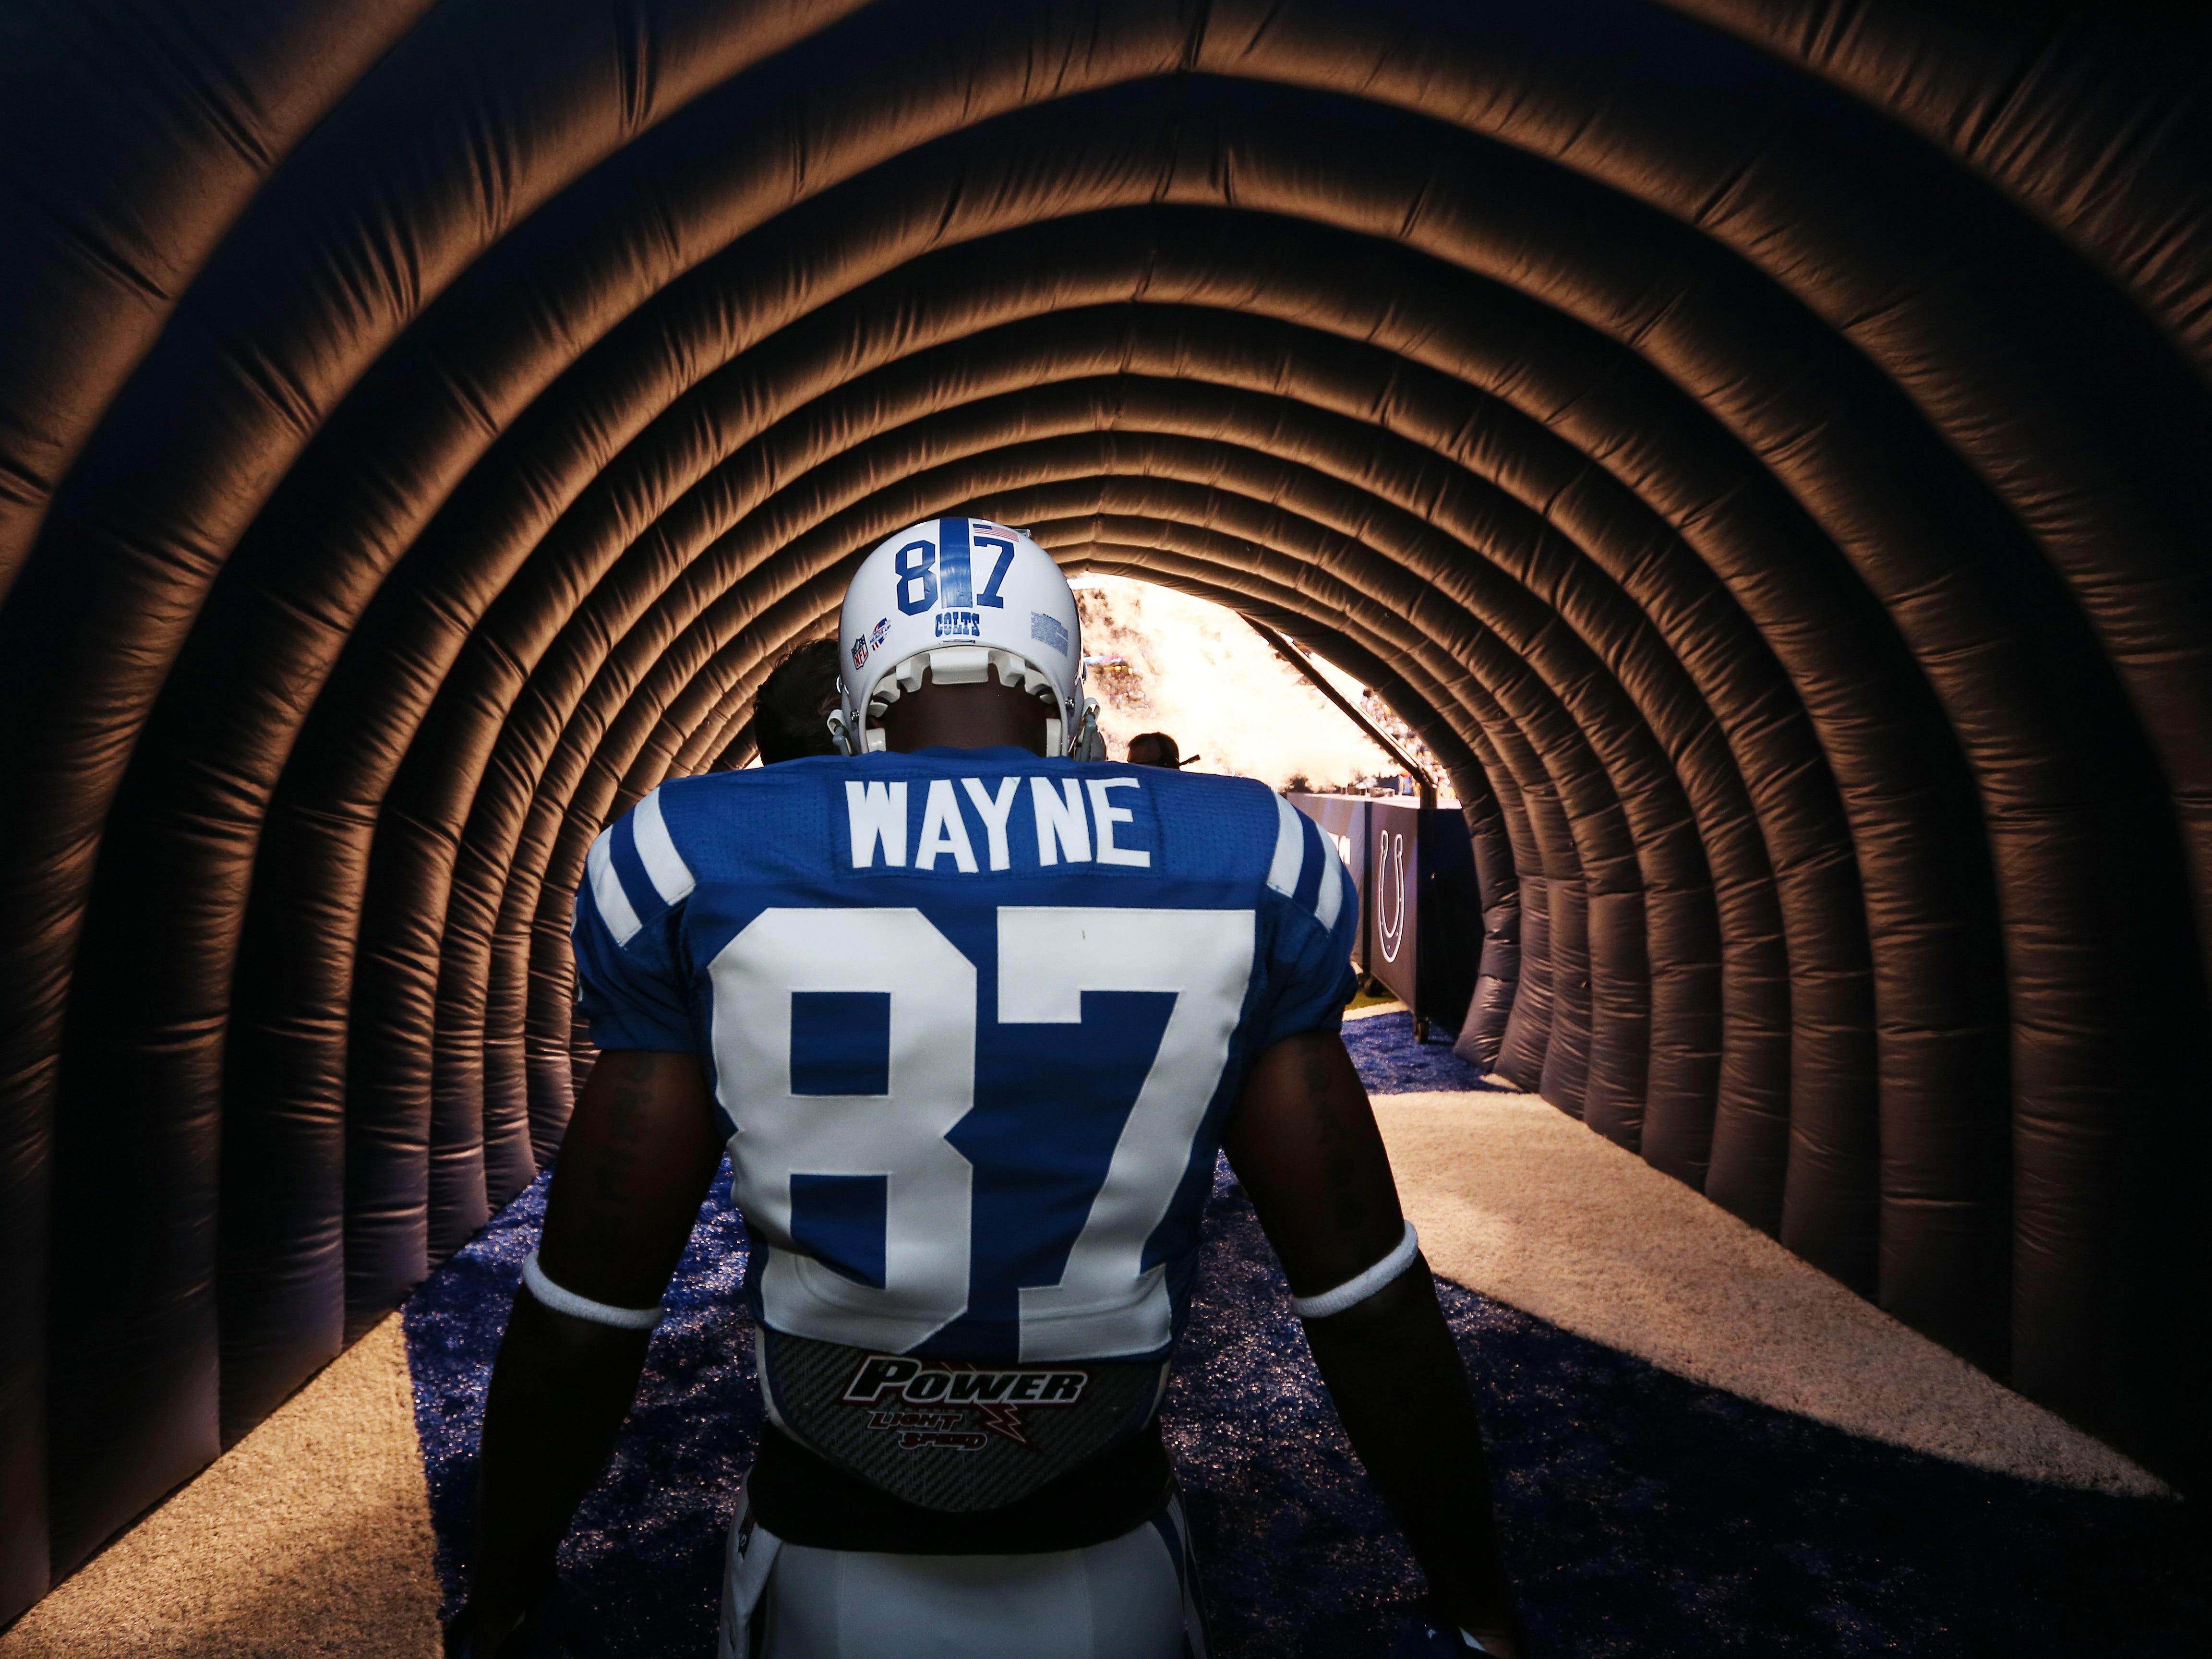 'Plan B' to the Ring of Honor: Give Reggie Wayne his due